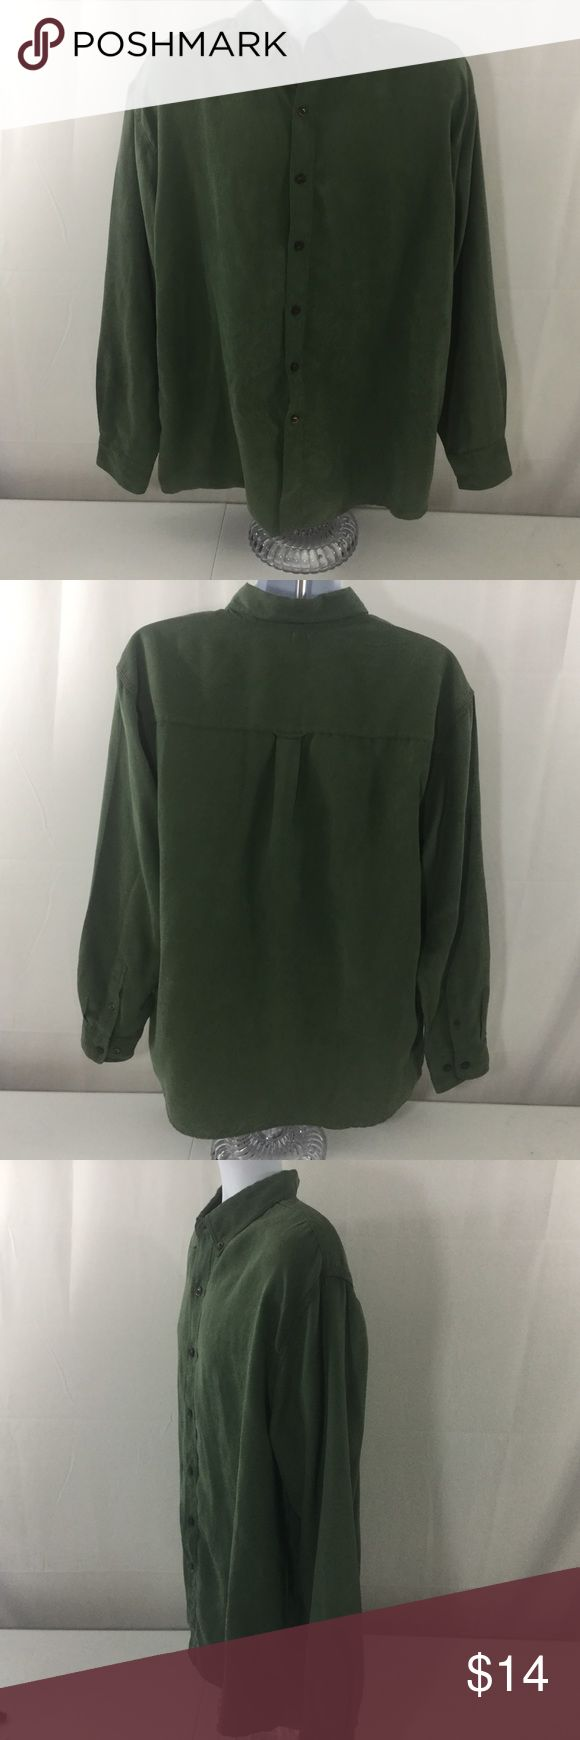 """Rugged Earth Faux Suede Button Down Shirt Green Excellent used condition, no noted flaws. Men's size large. Color green. Faux suede fabric, very soft and comfy. Button down. Long sleeves. 100% poly. Machine wash. Approx. laying flat measurements: armpit to armpit 25.5"""", sleeves 25"""", length 32.5"""". Rugged Earth Outfitters Shirts Casual Button Down Shirts"""